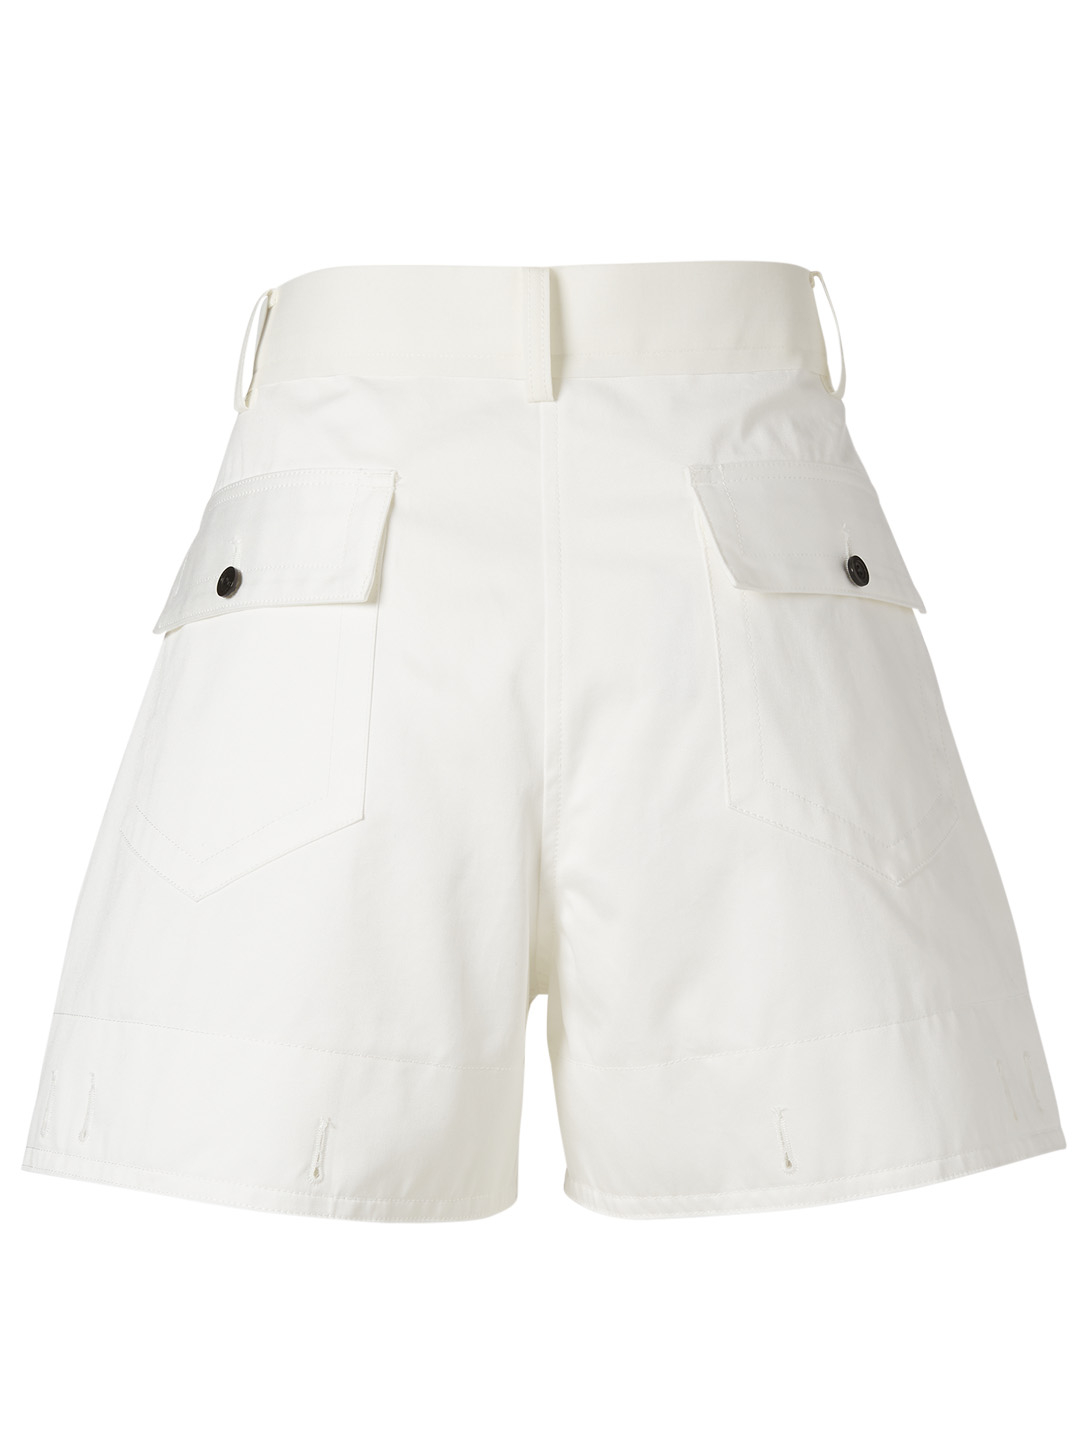 SACAI Shorts With Grommet Detail Women's White